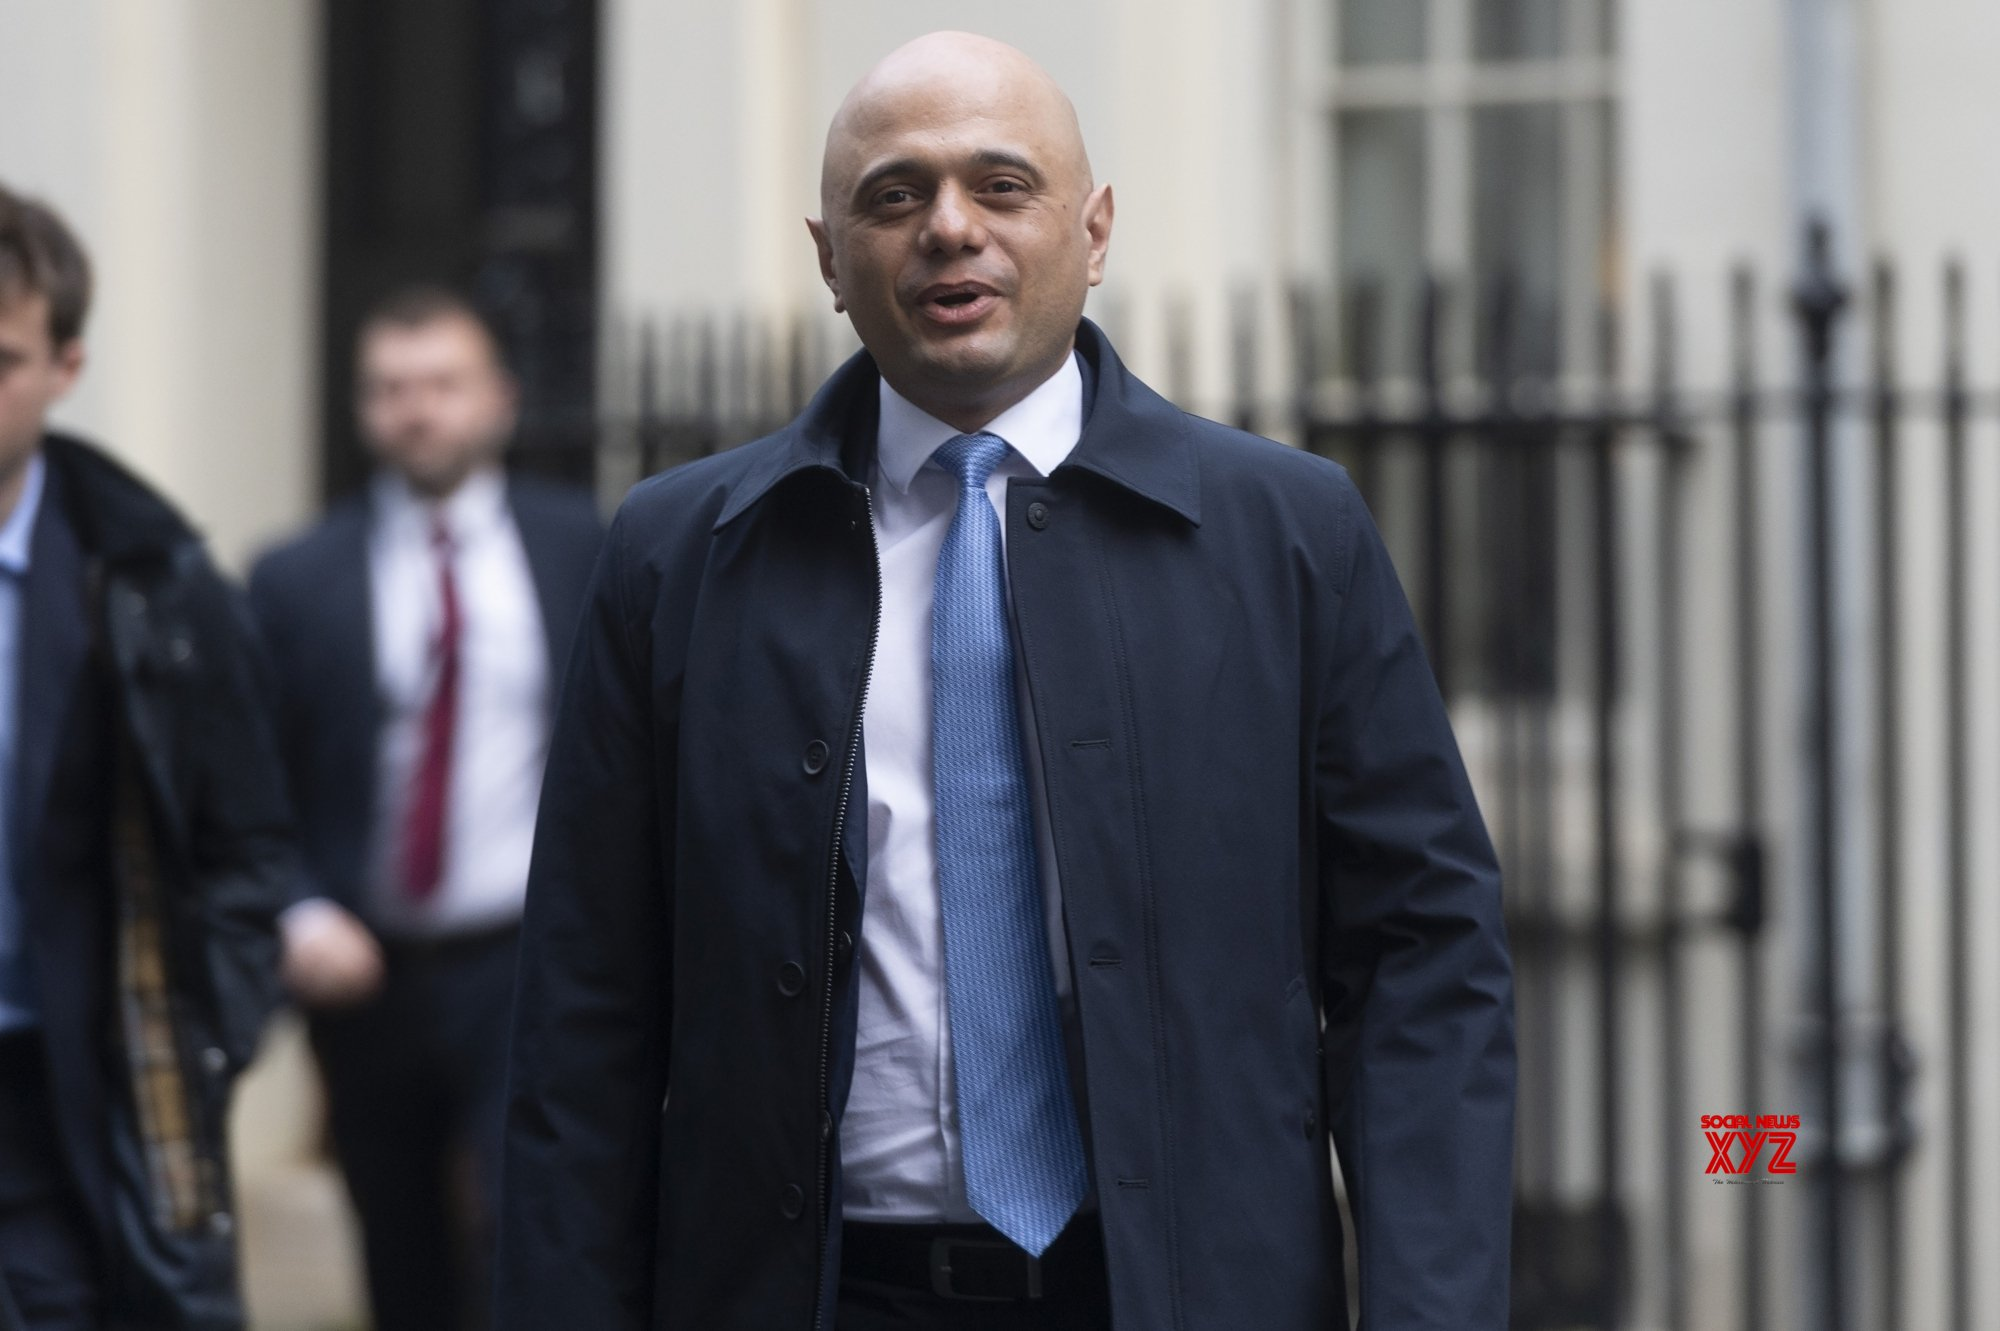 Rishi Sunak UK's new Chancellor of Exchequer, as Javid quits